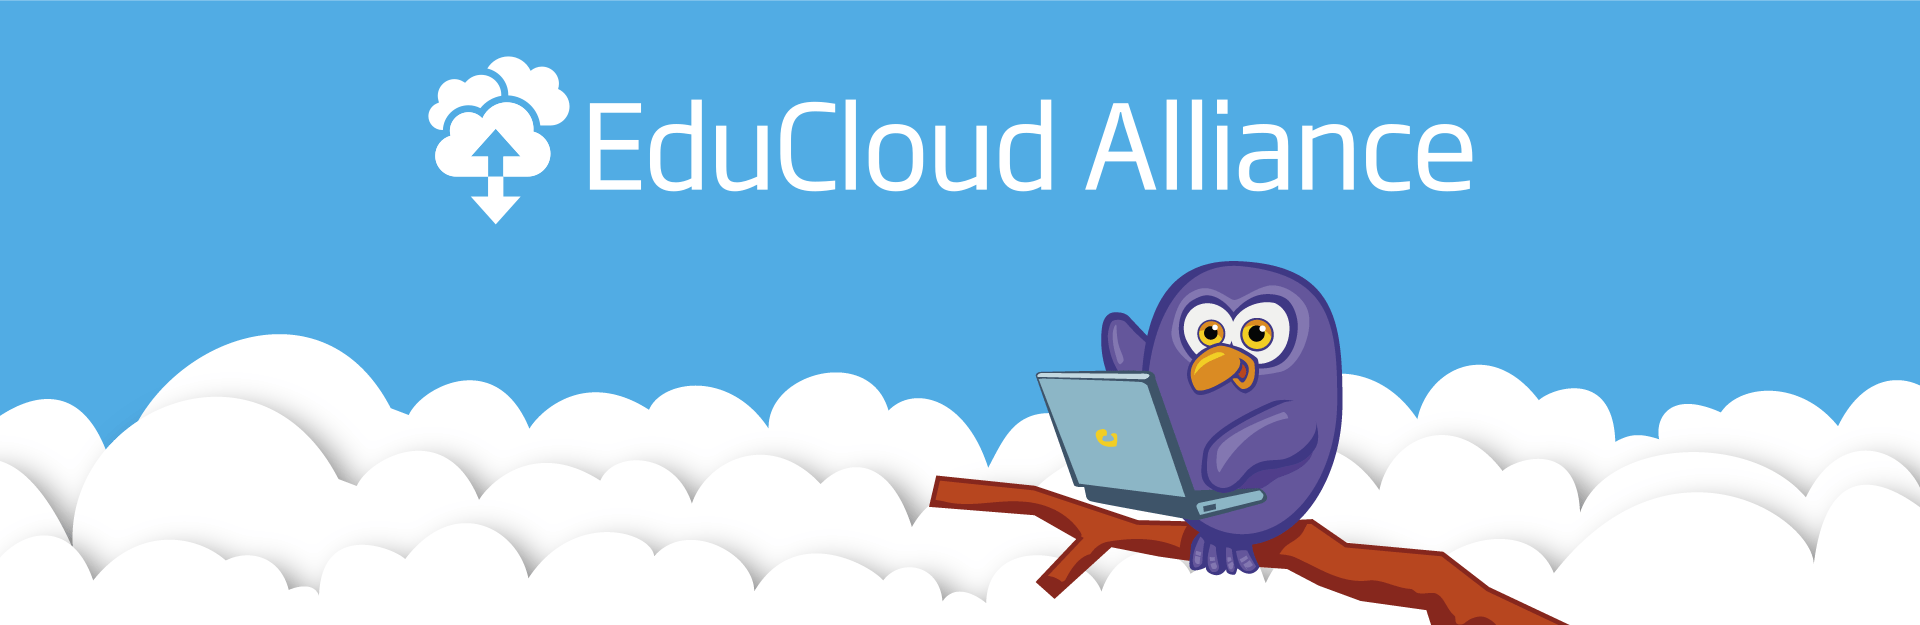 EduCloud Alliance